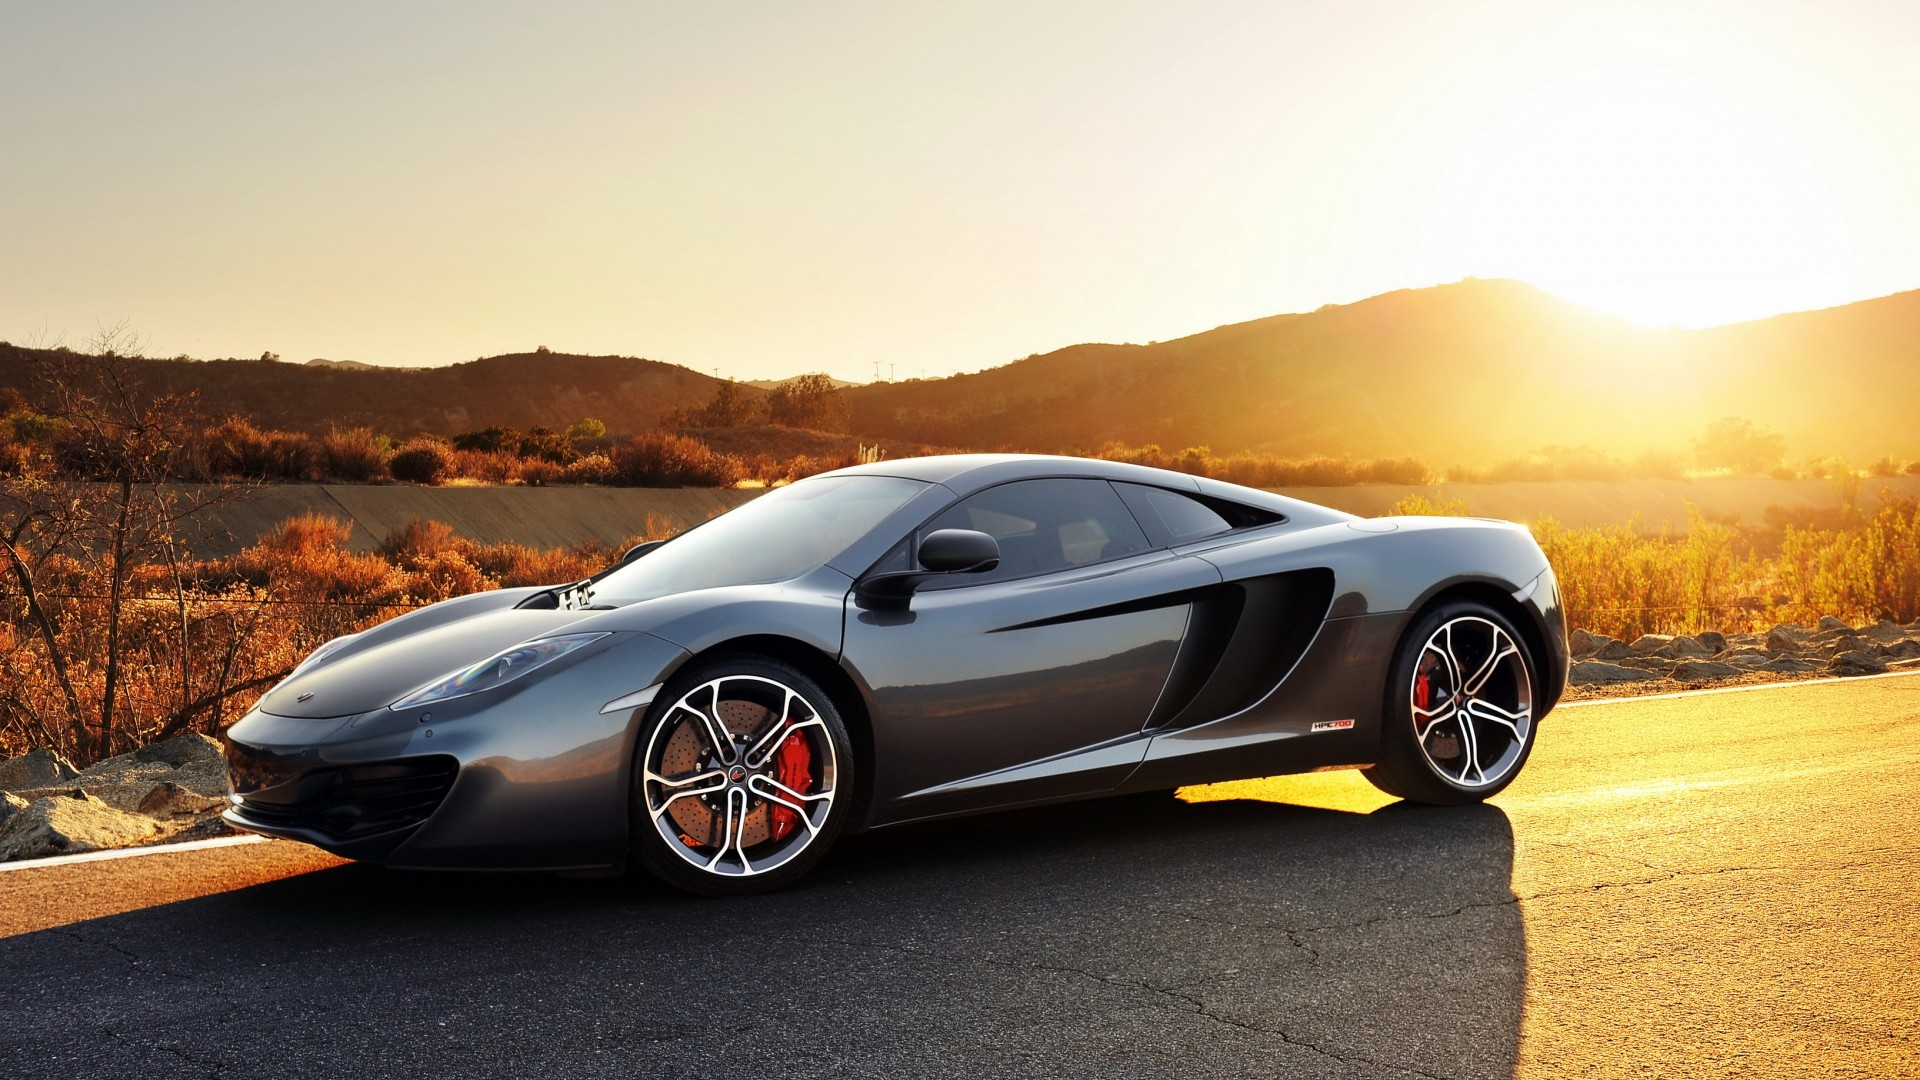 Supercar Hd Wallpaper: Supercars HD Wallpapers 1080p (76+ Images